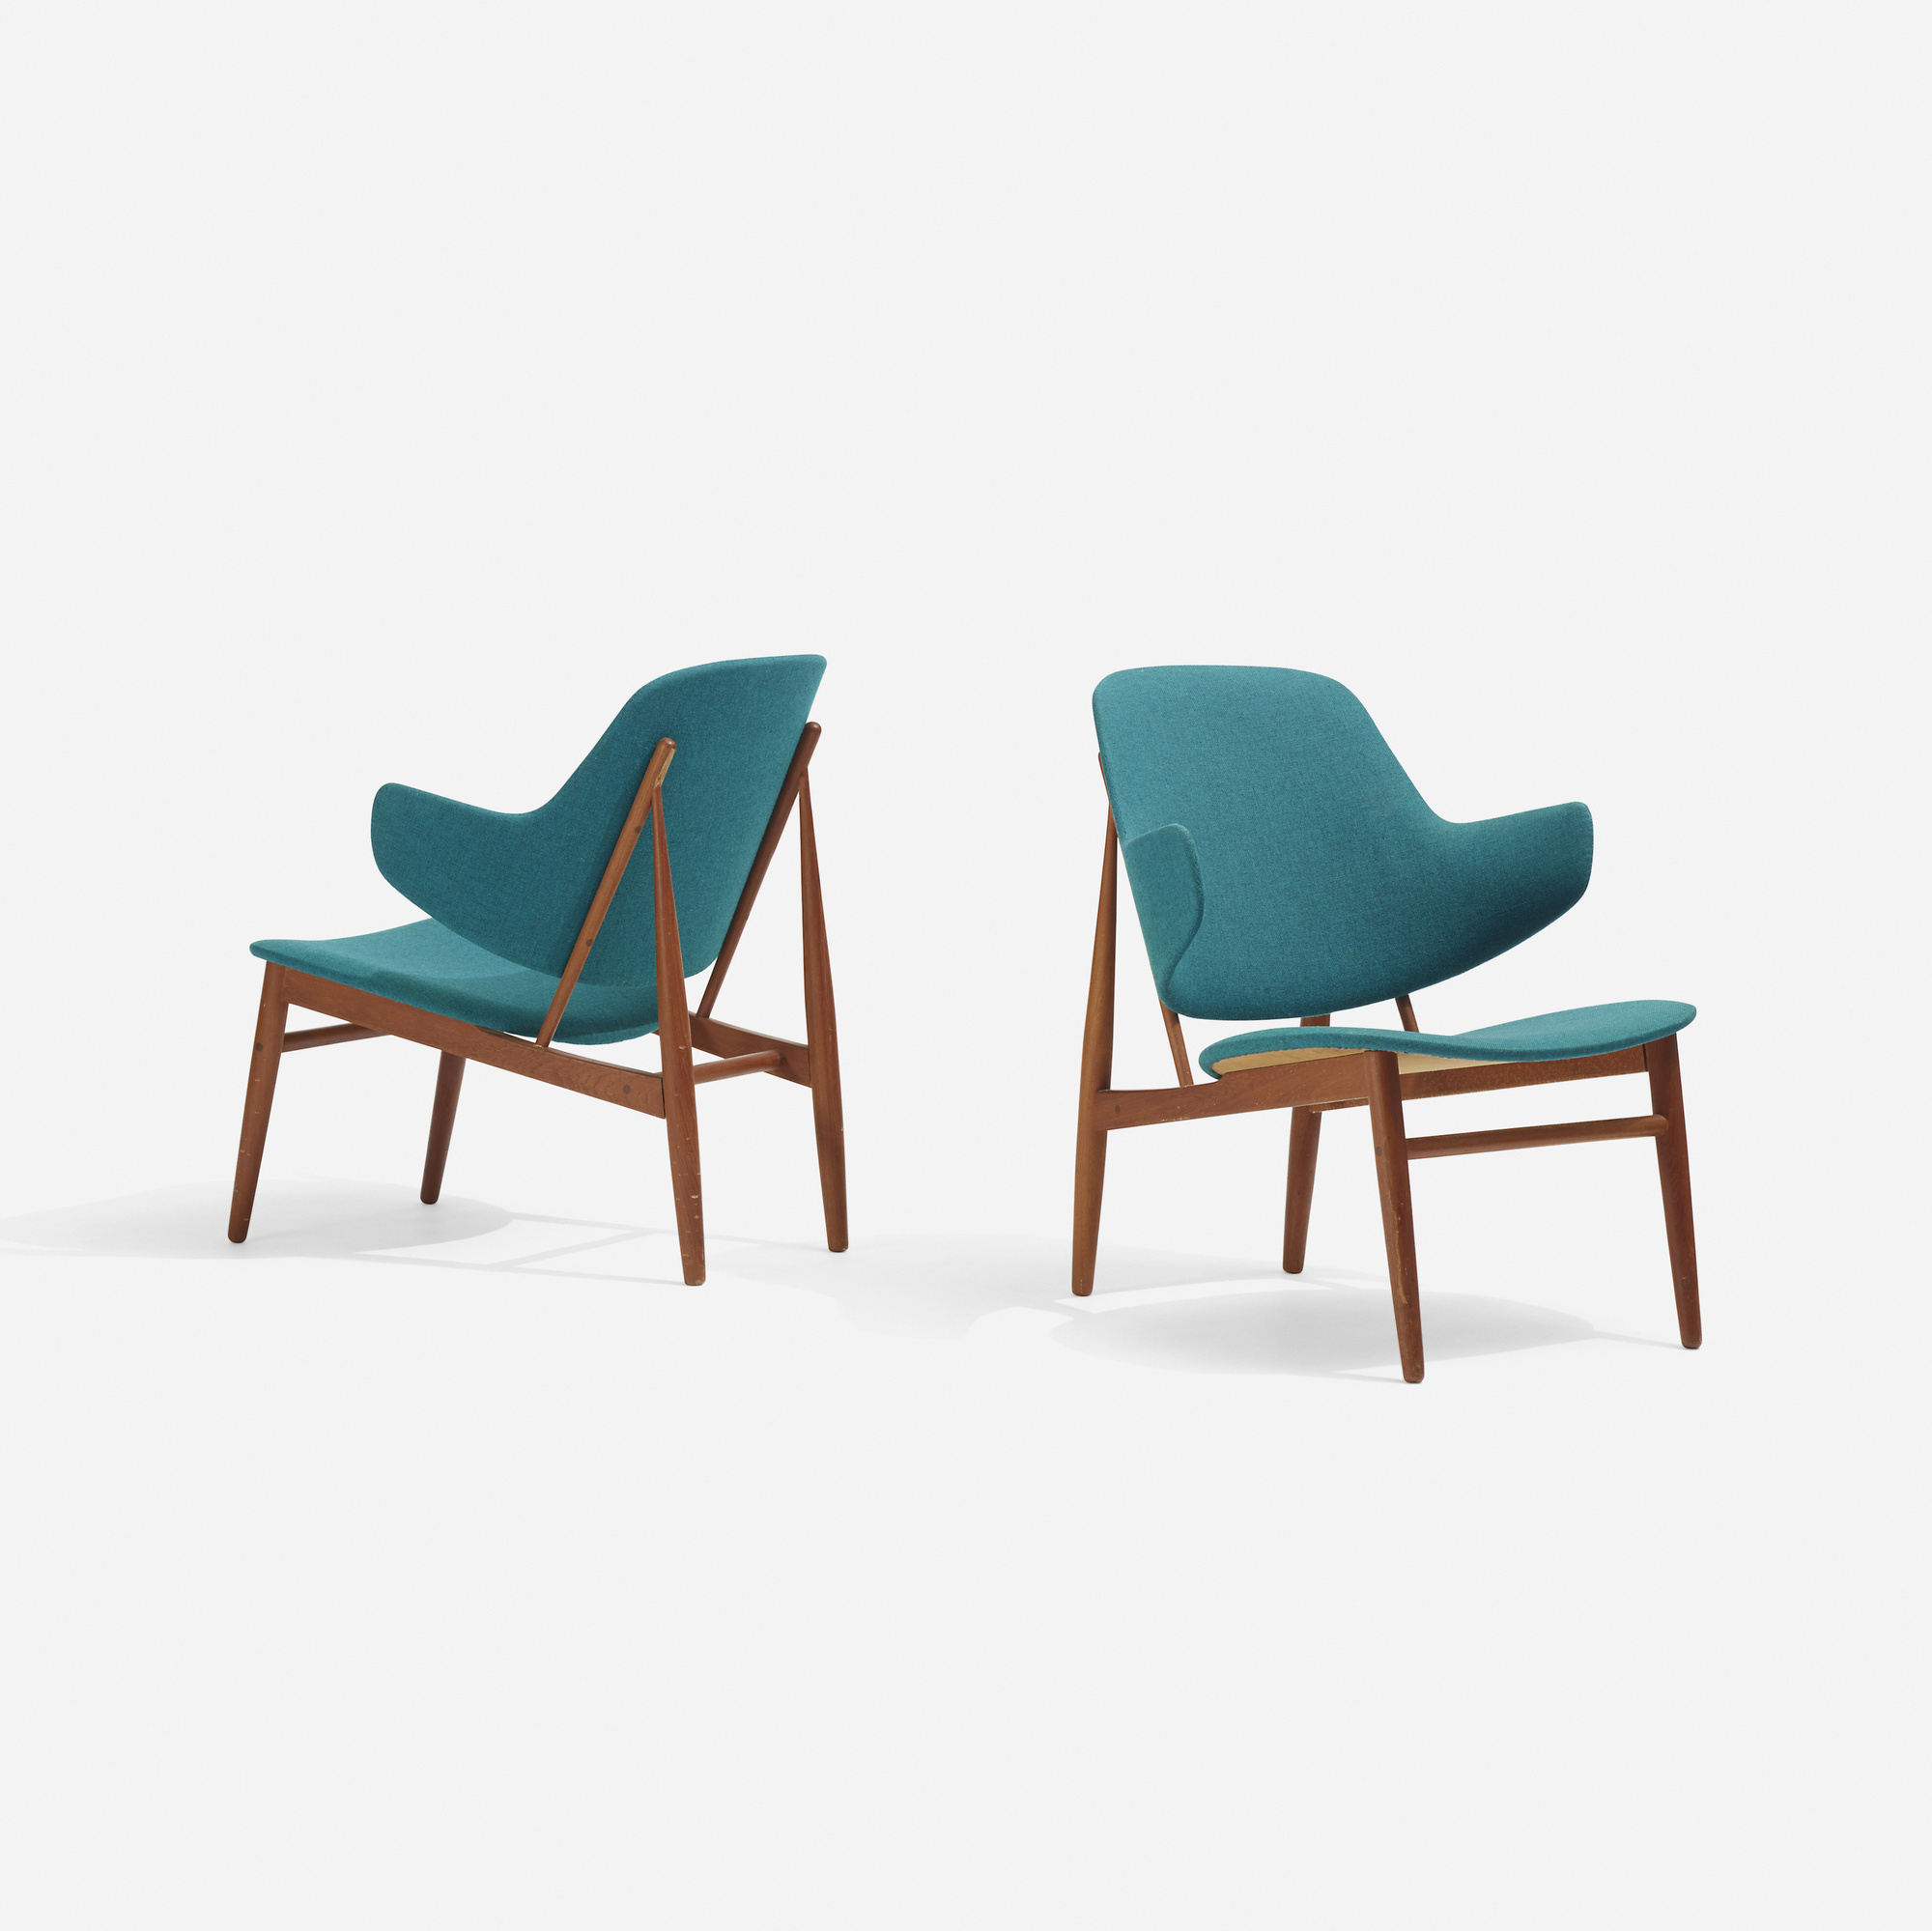 286: Ib Kofod-Larsen / lounge chairs, pair (1 of 3)